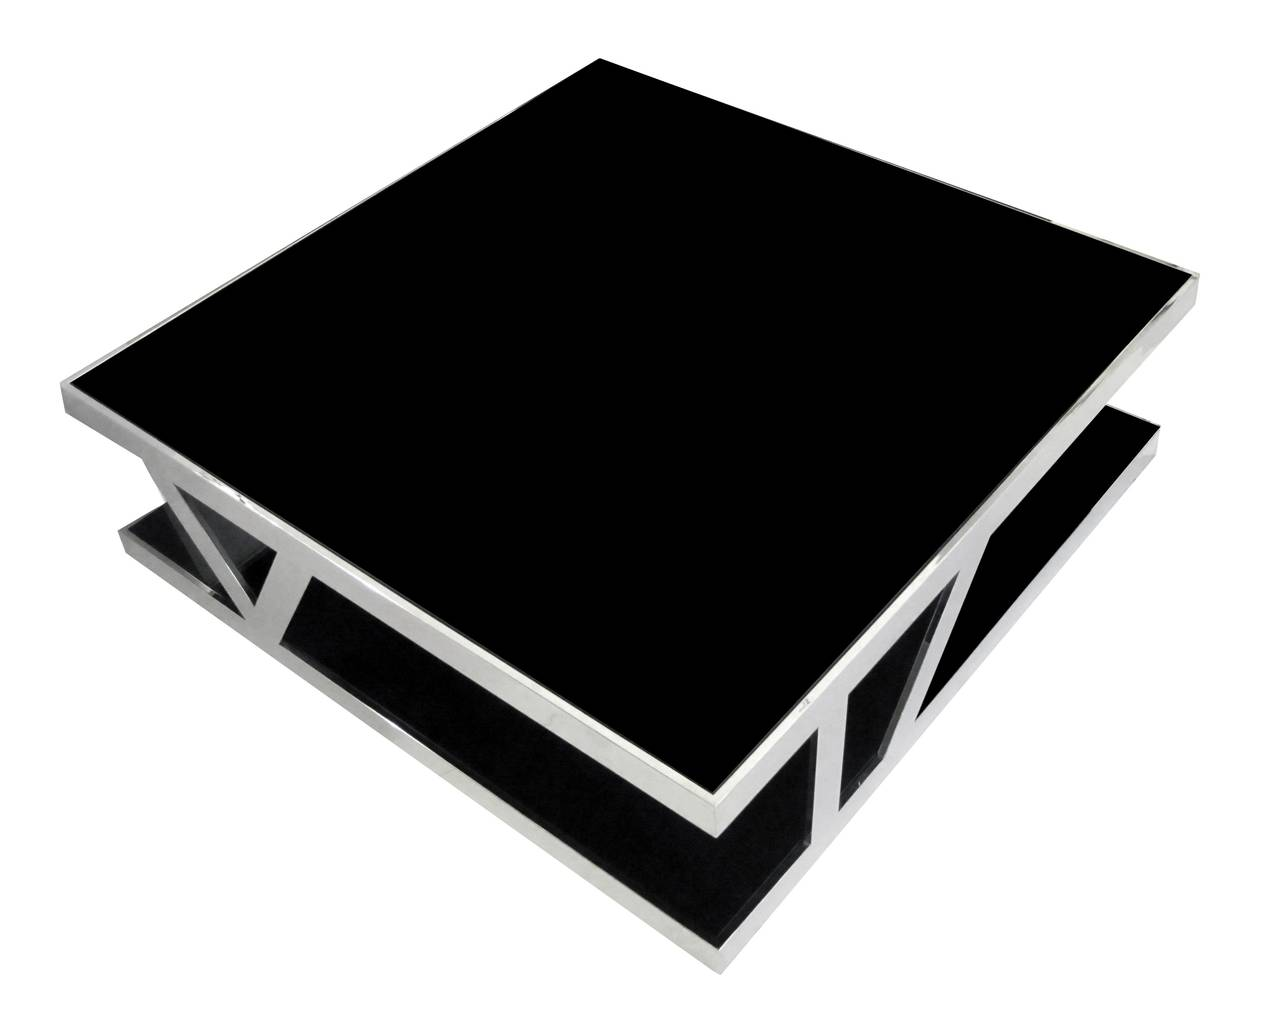 Picture of: Chrome and Glass Coffee Table Black Color